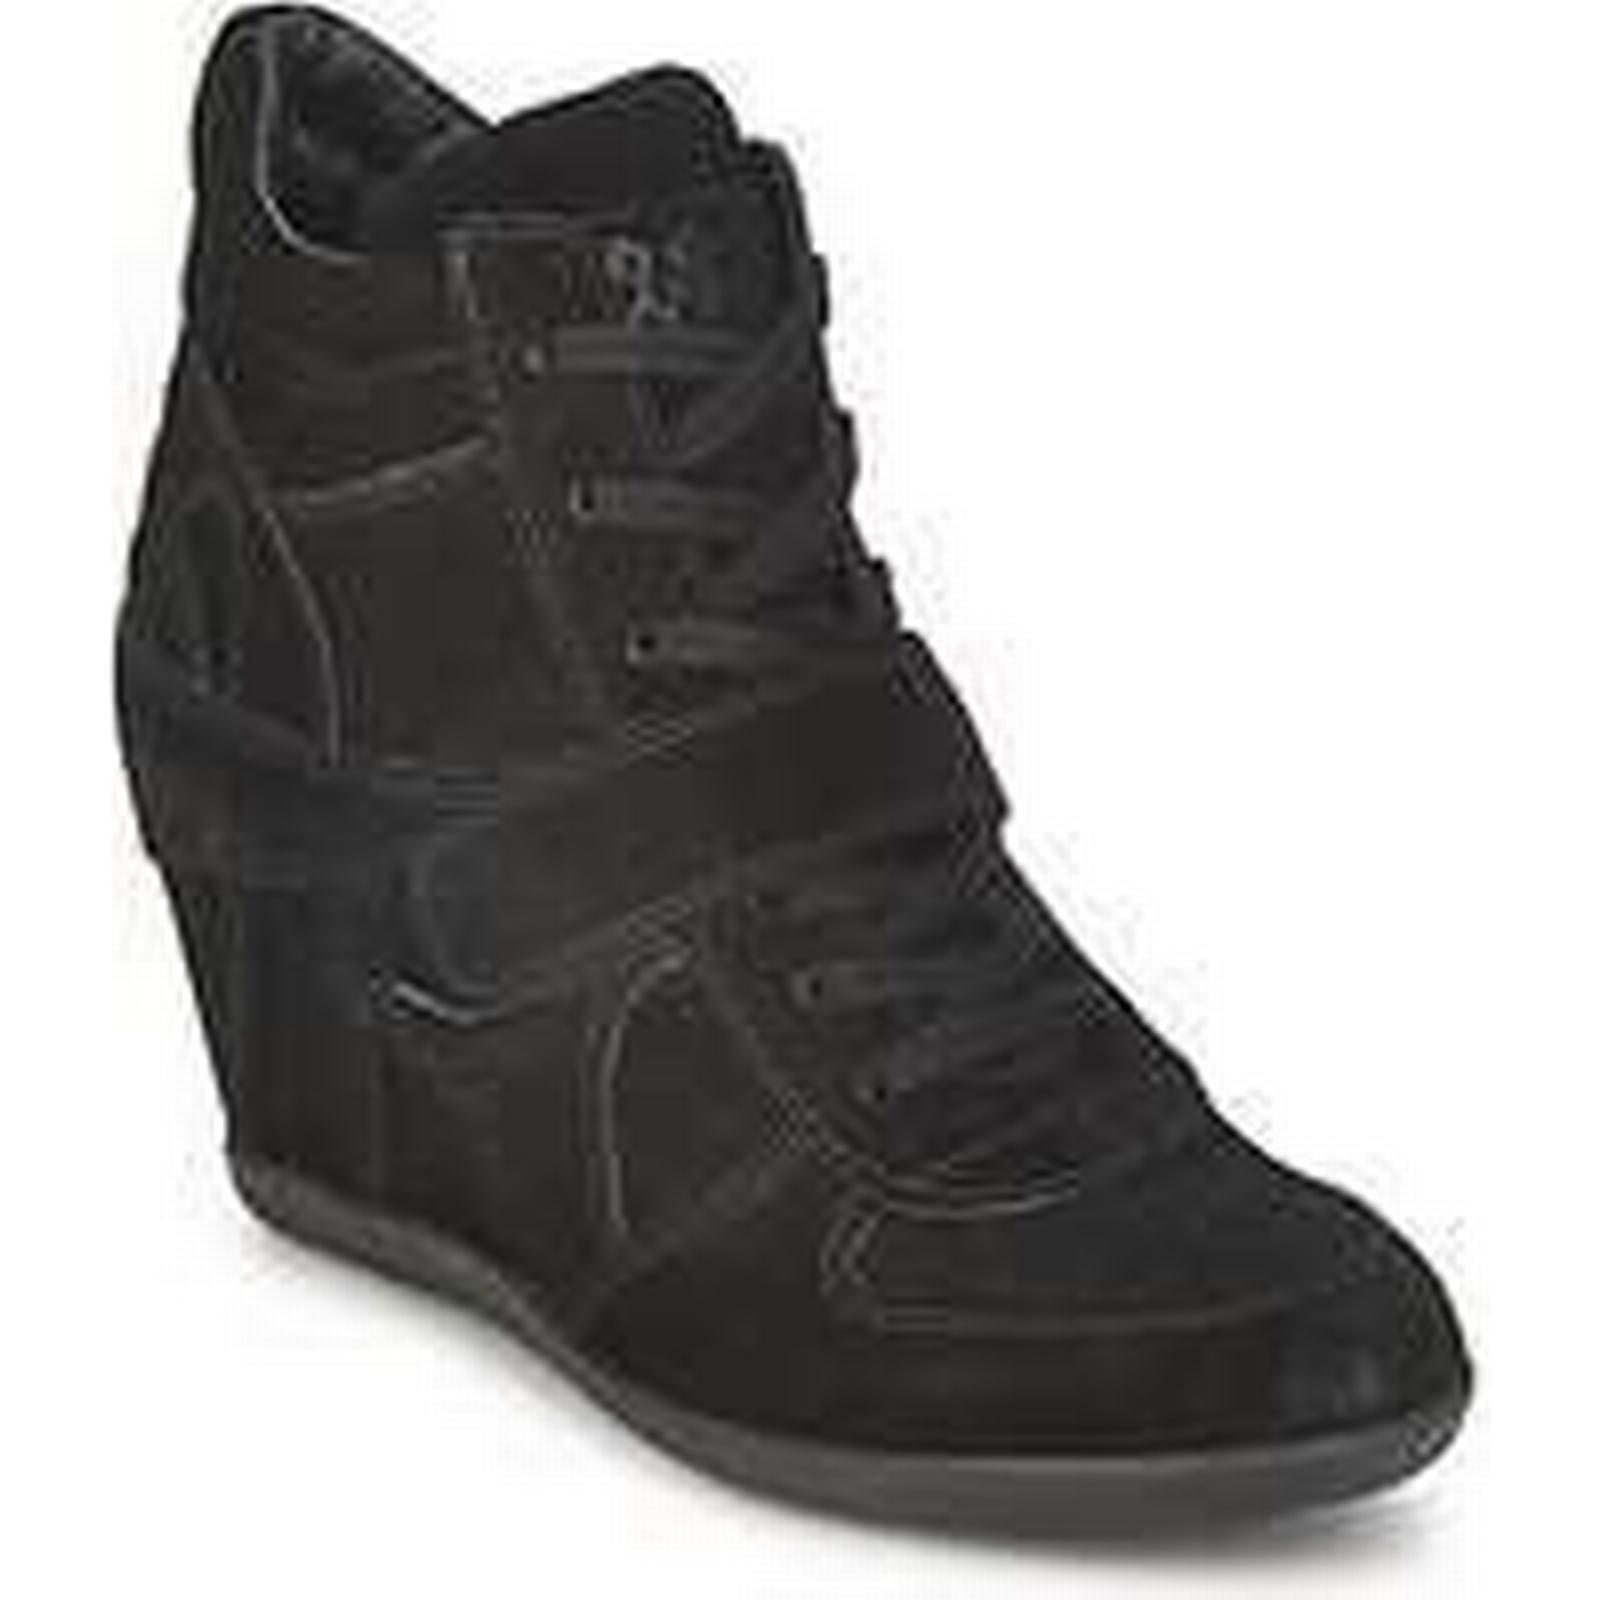 Spartoo.co.uk Ash BOWIE women's Shoes Black (High-top Trainers) in Black Shoes a4ef88